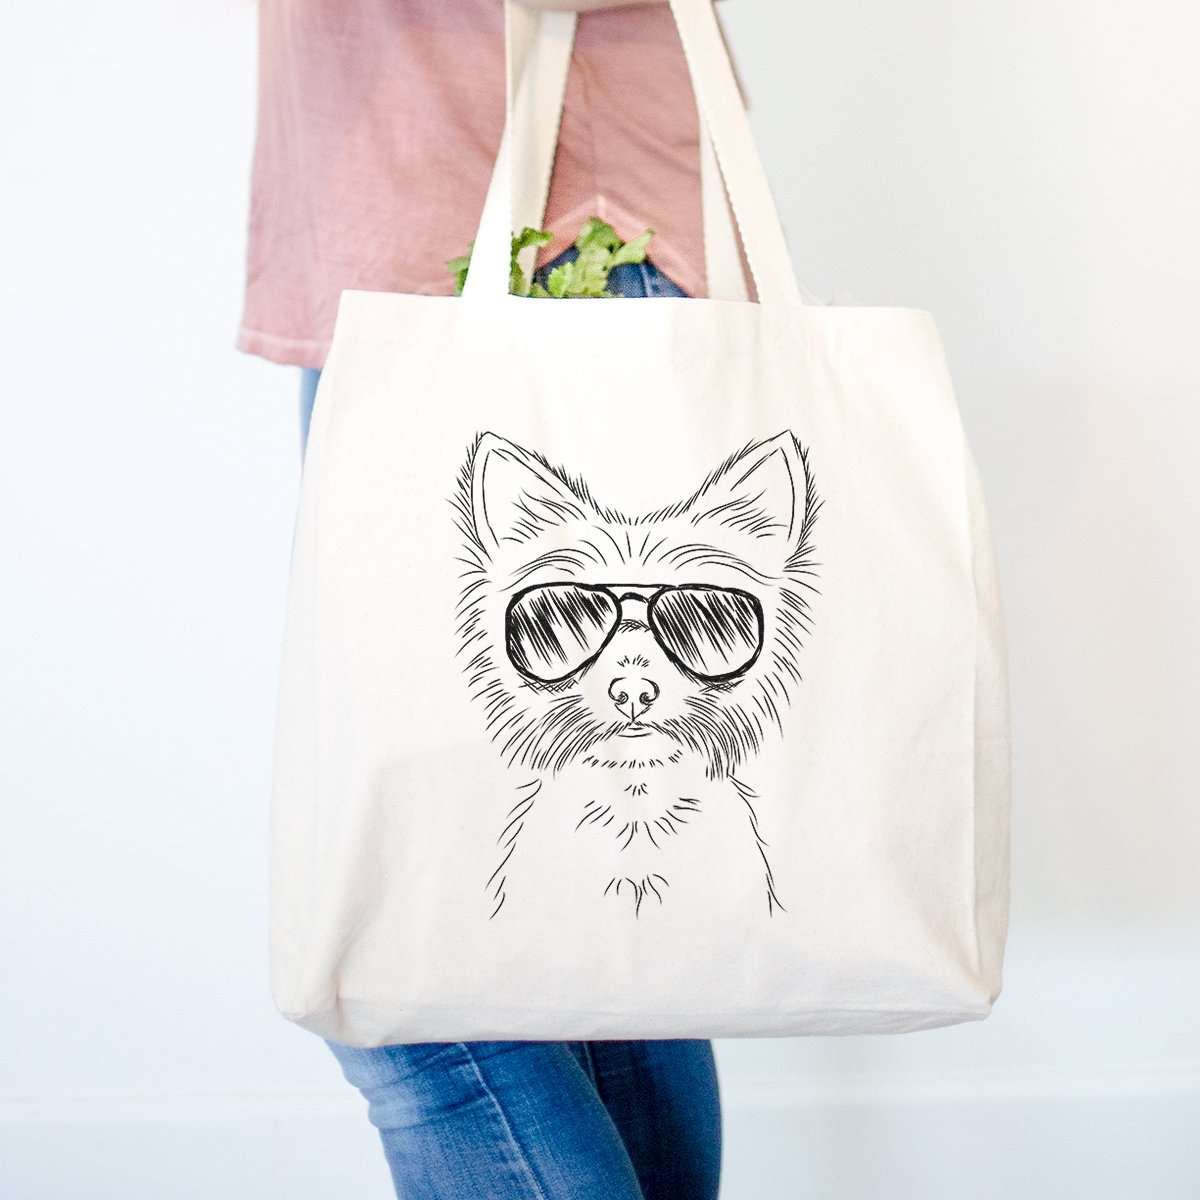 Farva the Yorkie - Tote